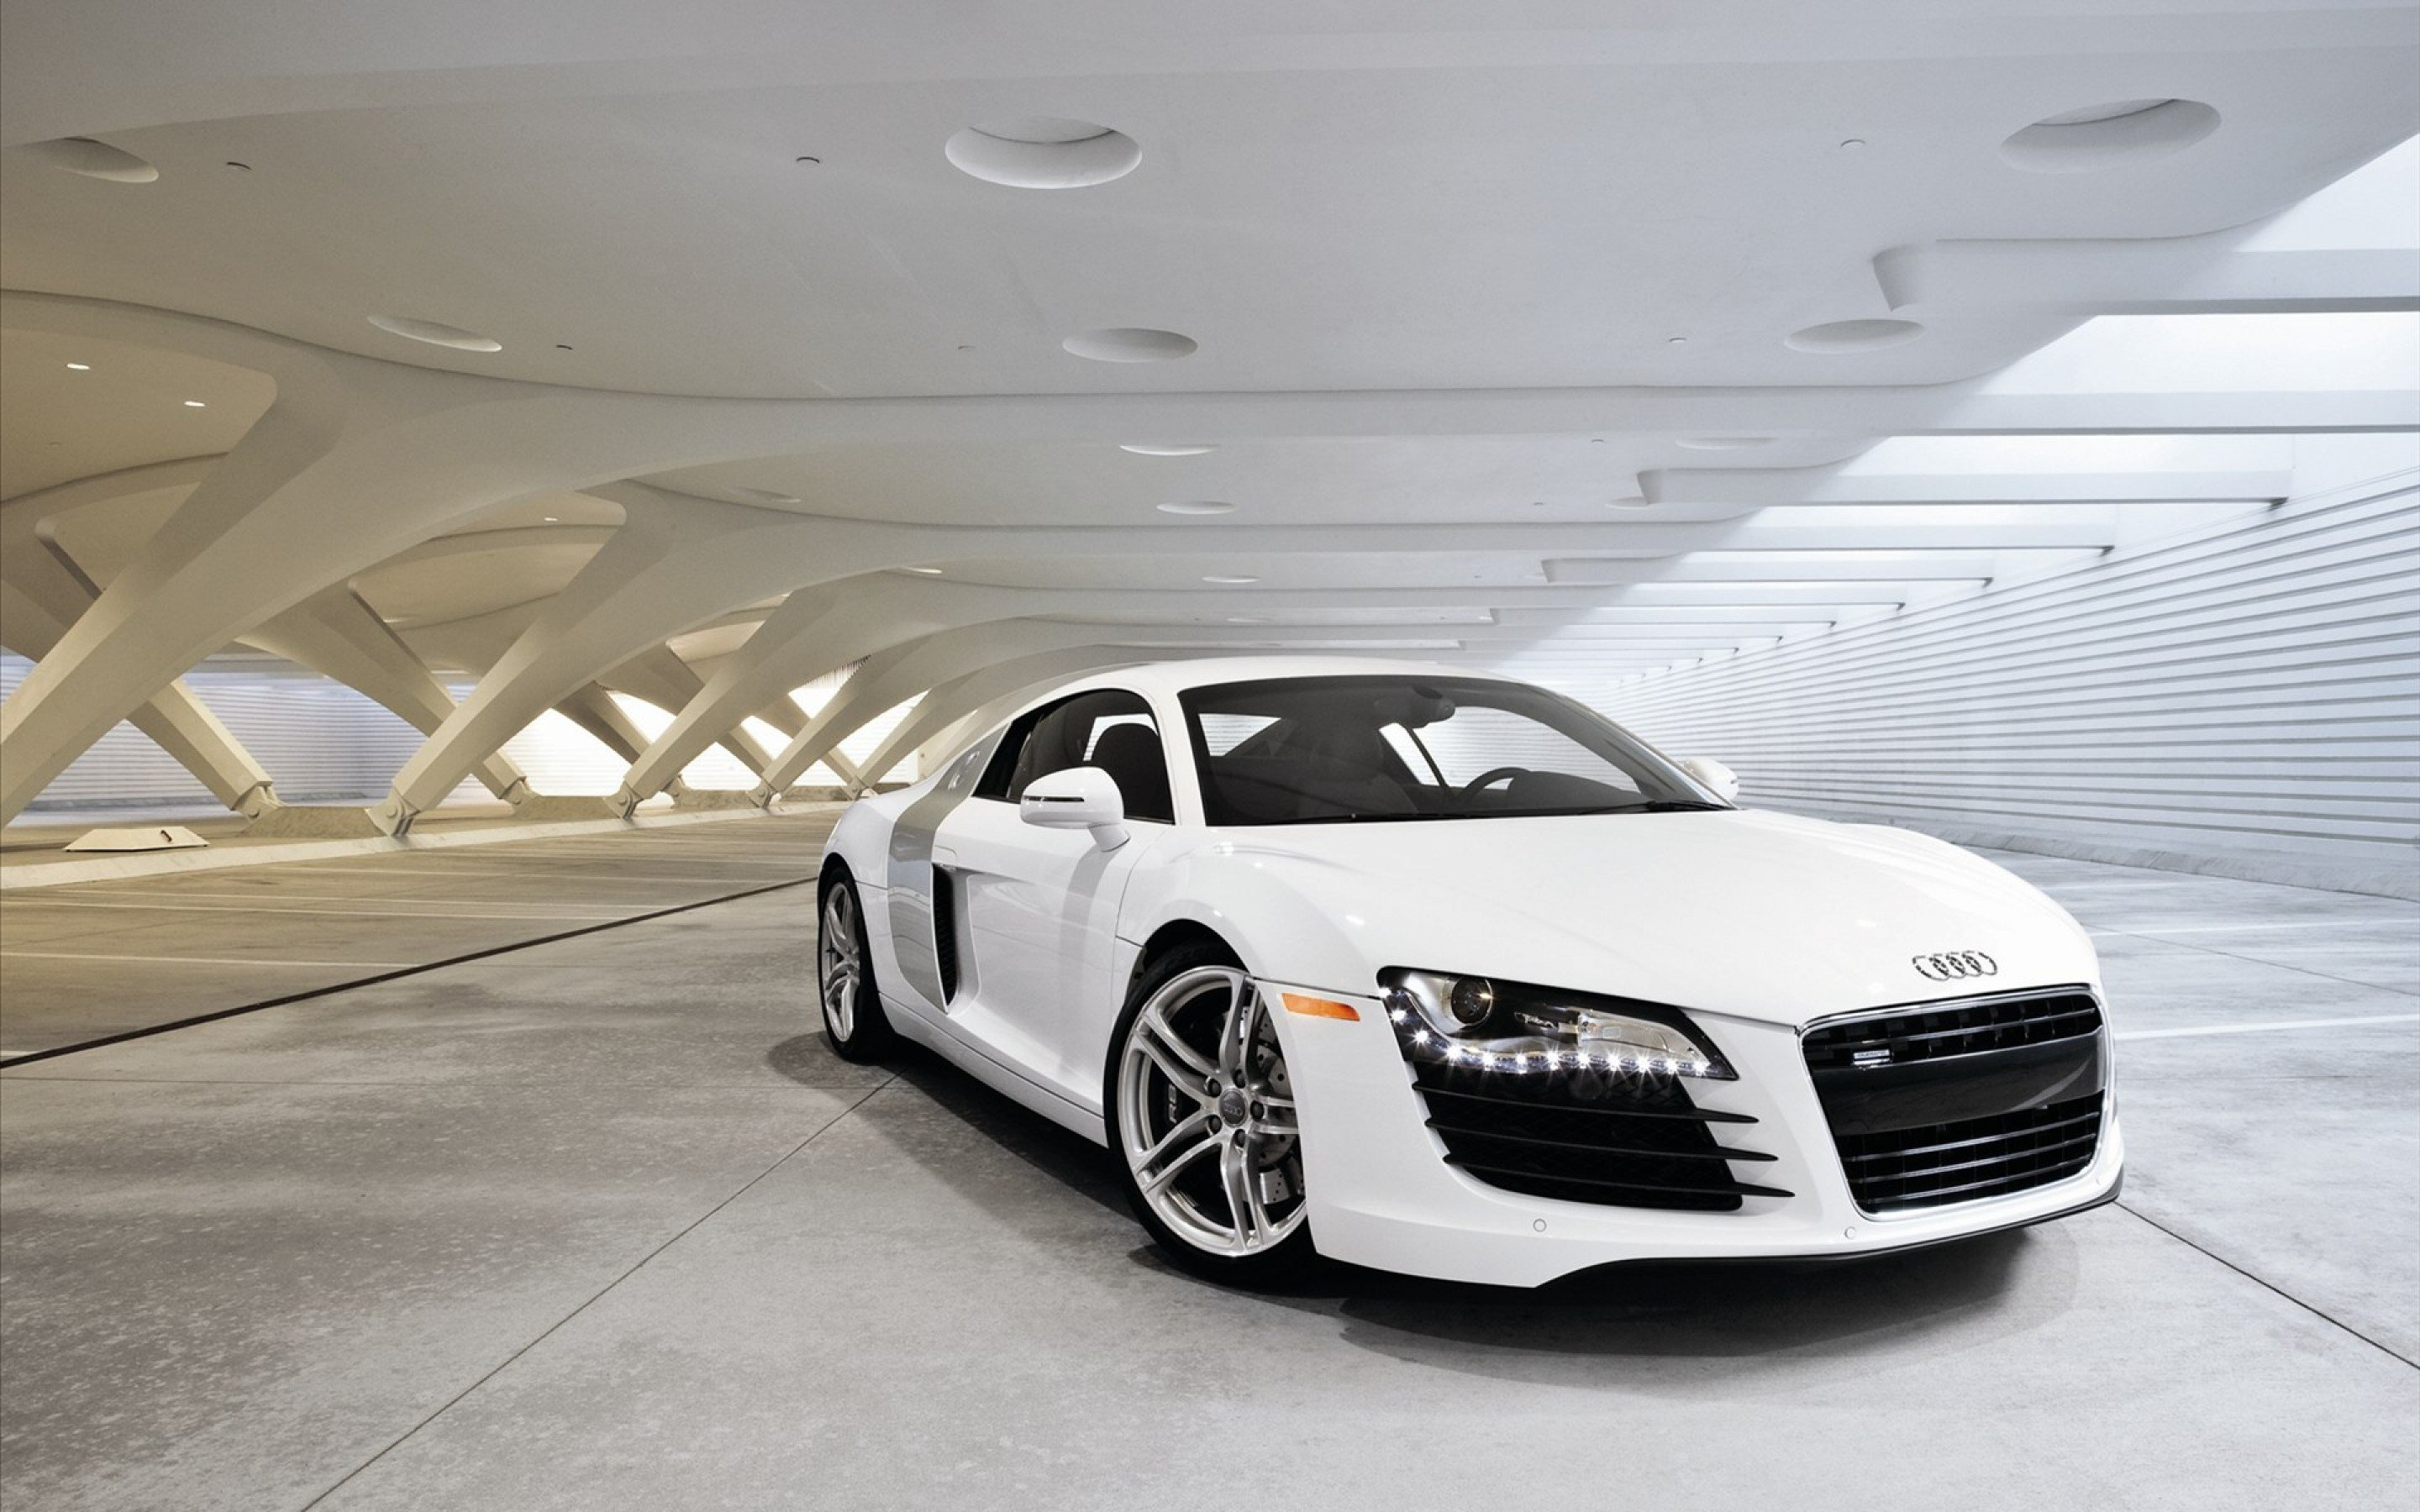 Latest Audi R8 Full Hd Wallpaper And Background Image 2880X1800 Free Download